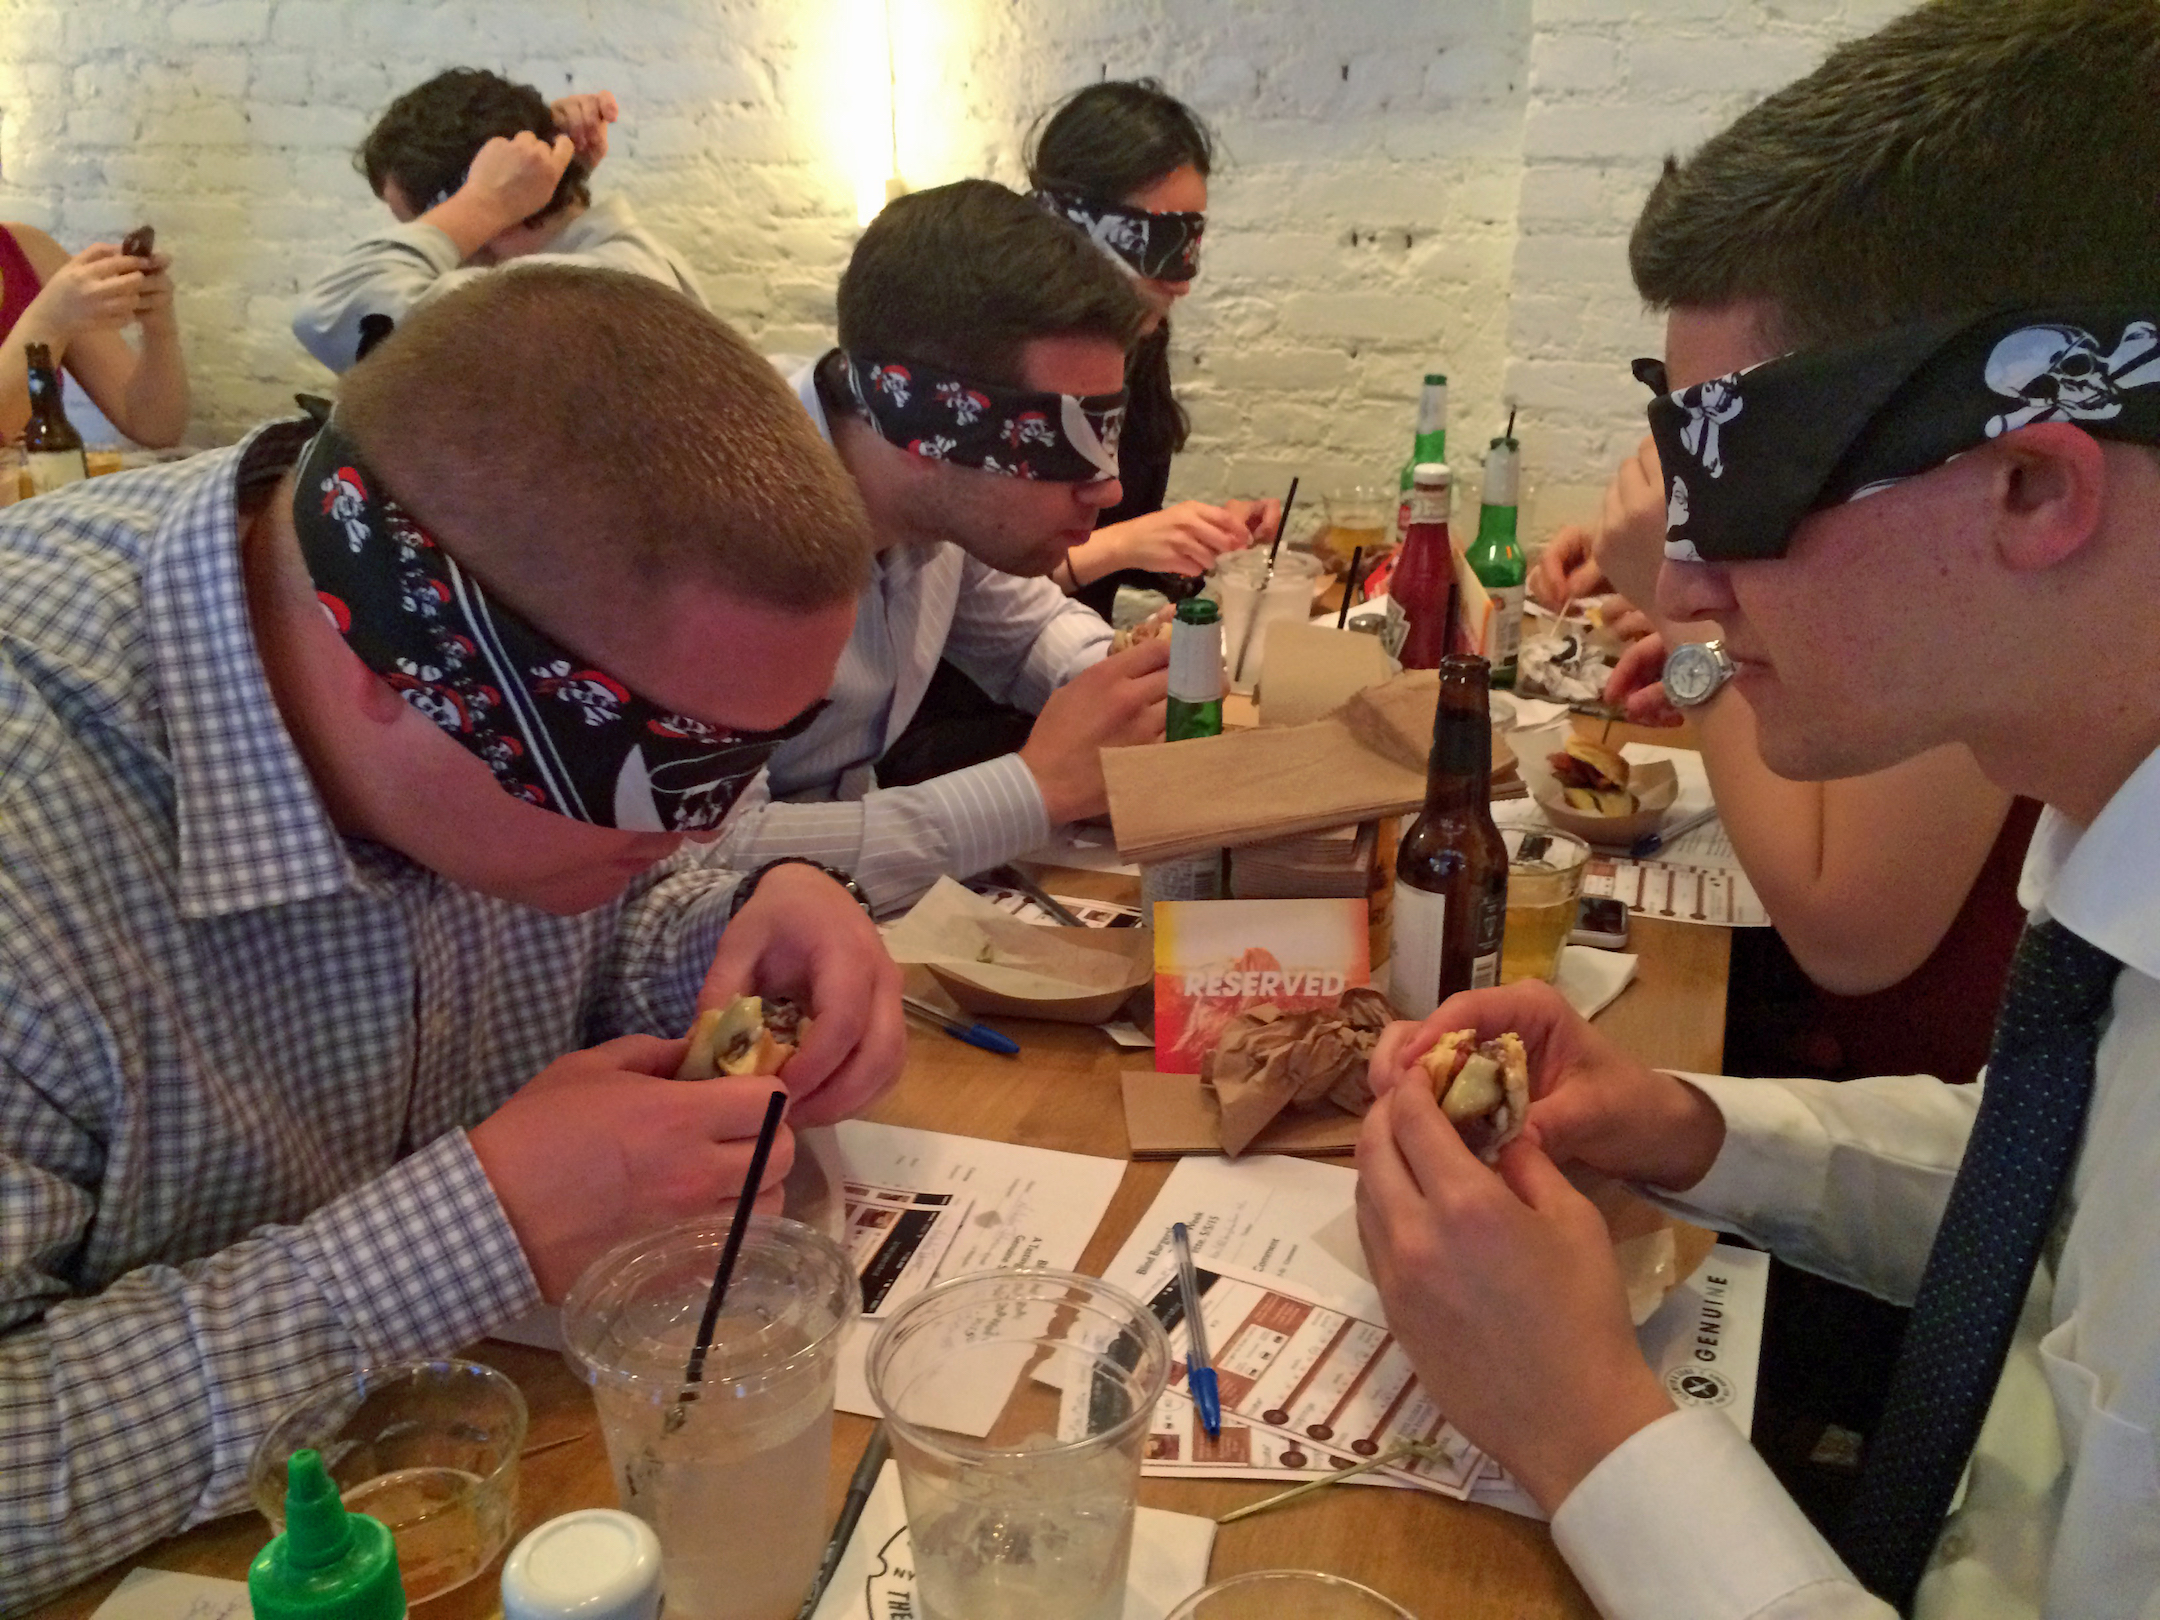 Schweid-and-Sons-Blind-Burger-Tasting-Genuine-Superette-2015-NY-Burger-Week-2016